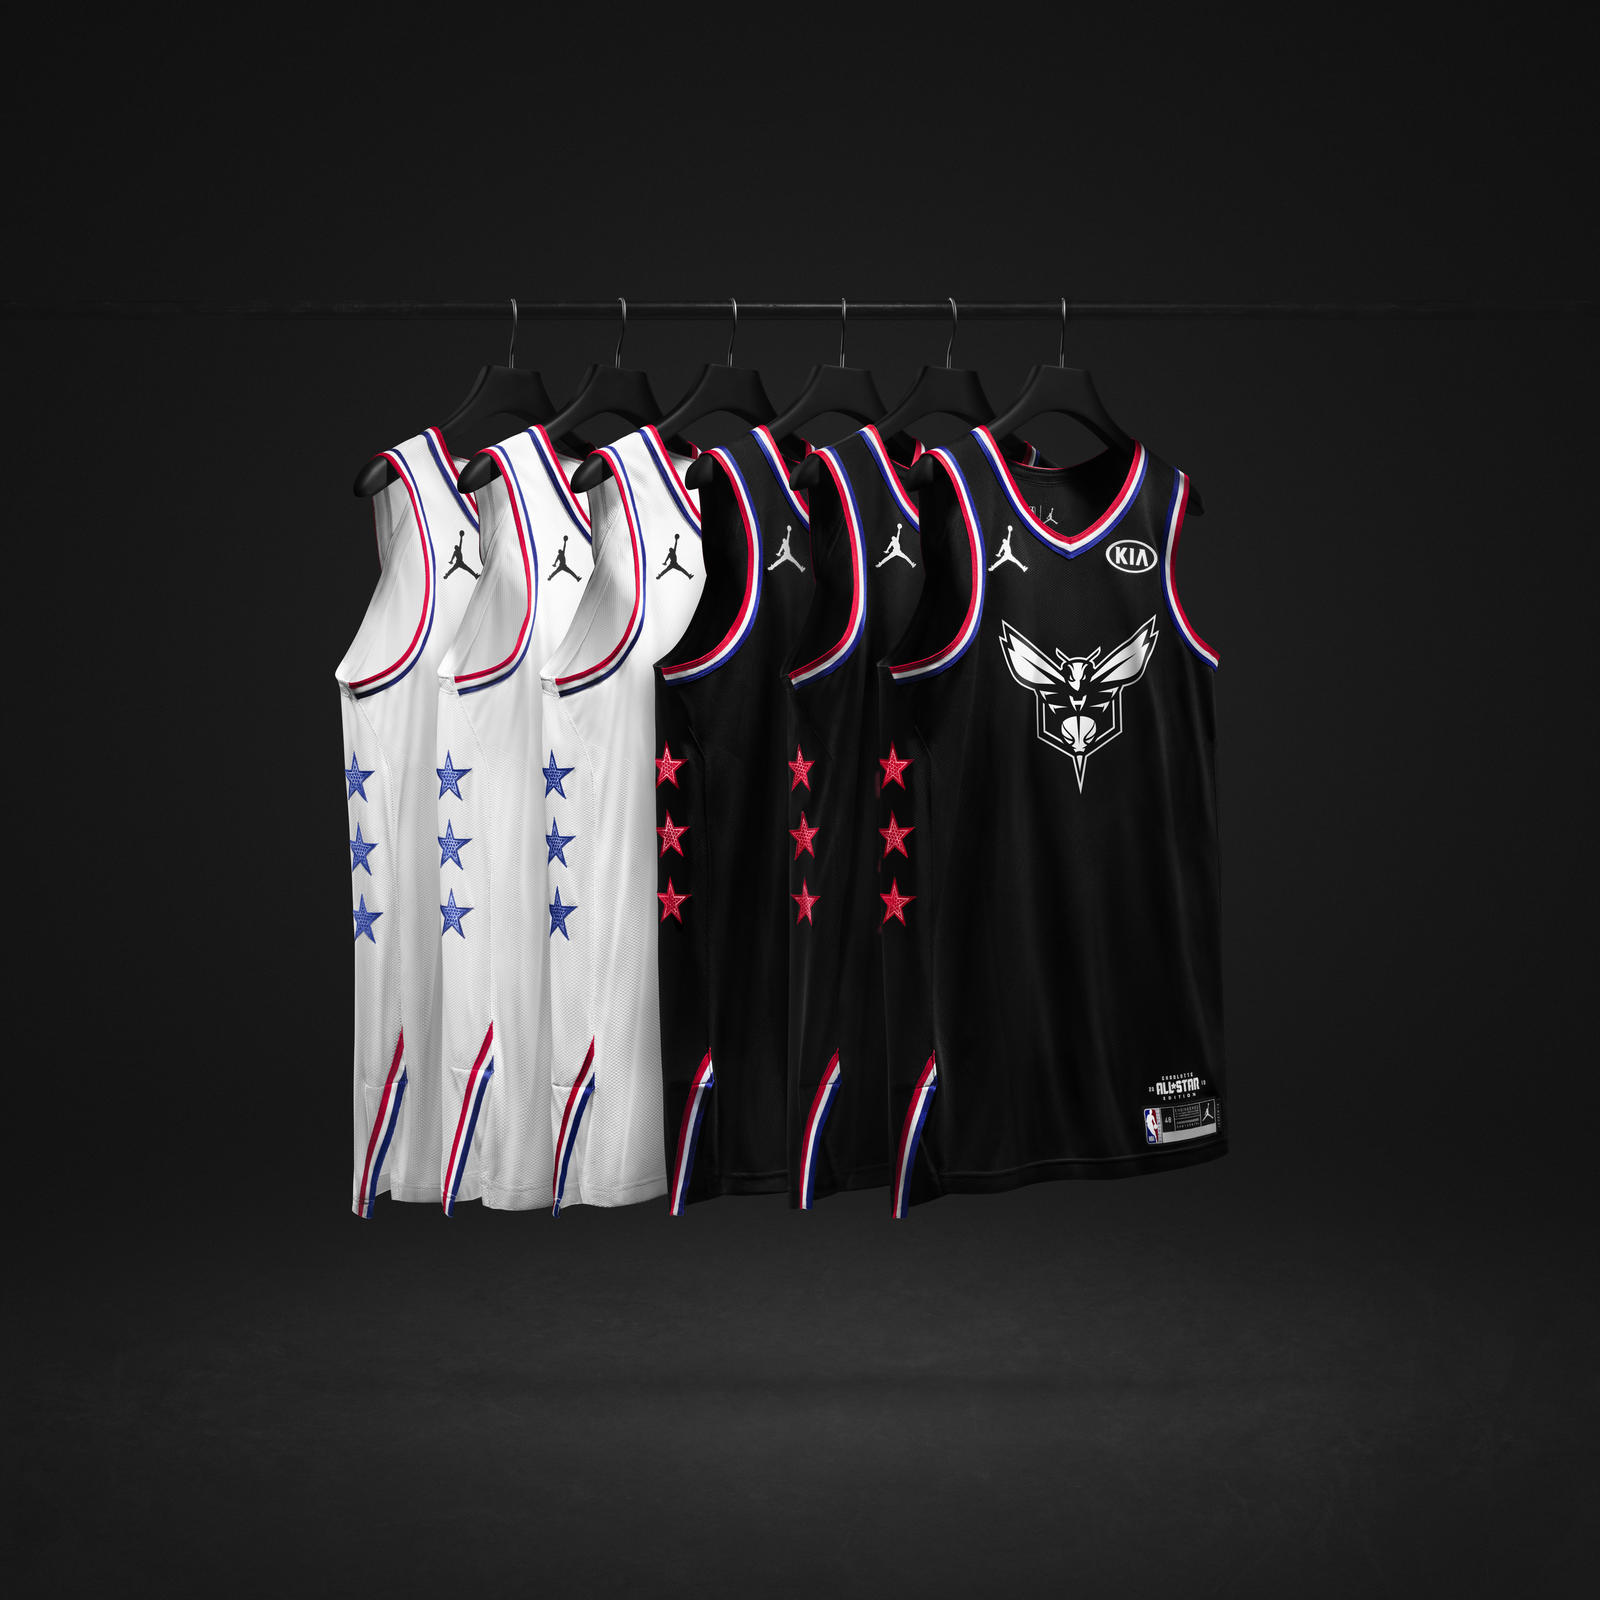 online store e8ca0 6b11c 2019 Jordan Brand NBA All-Star Edition Uniforms - Nike News